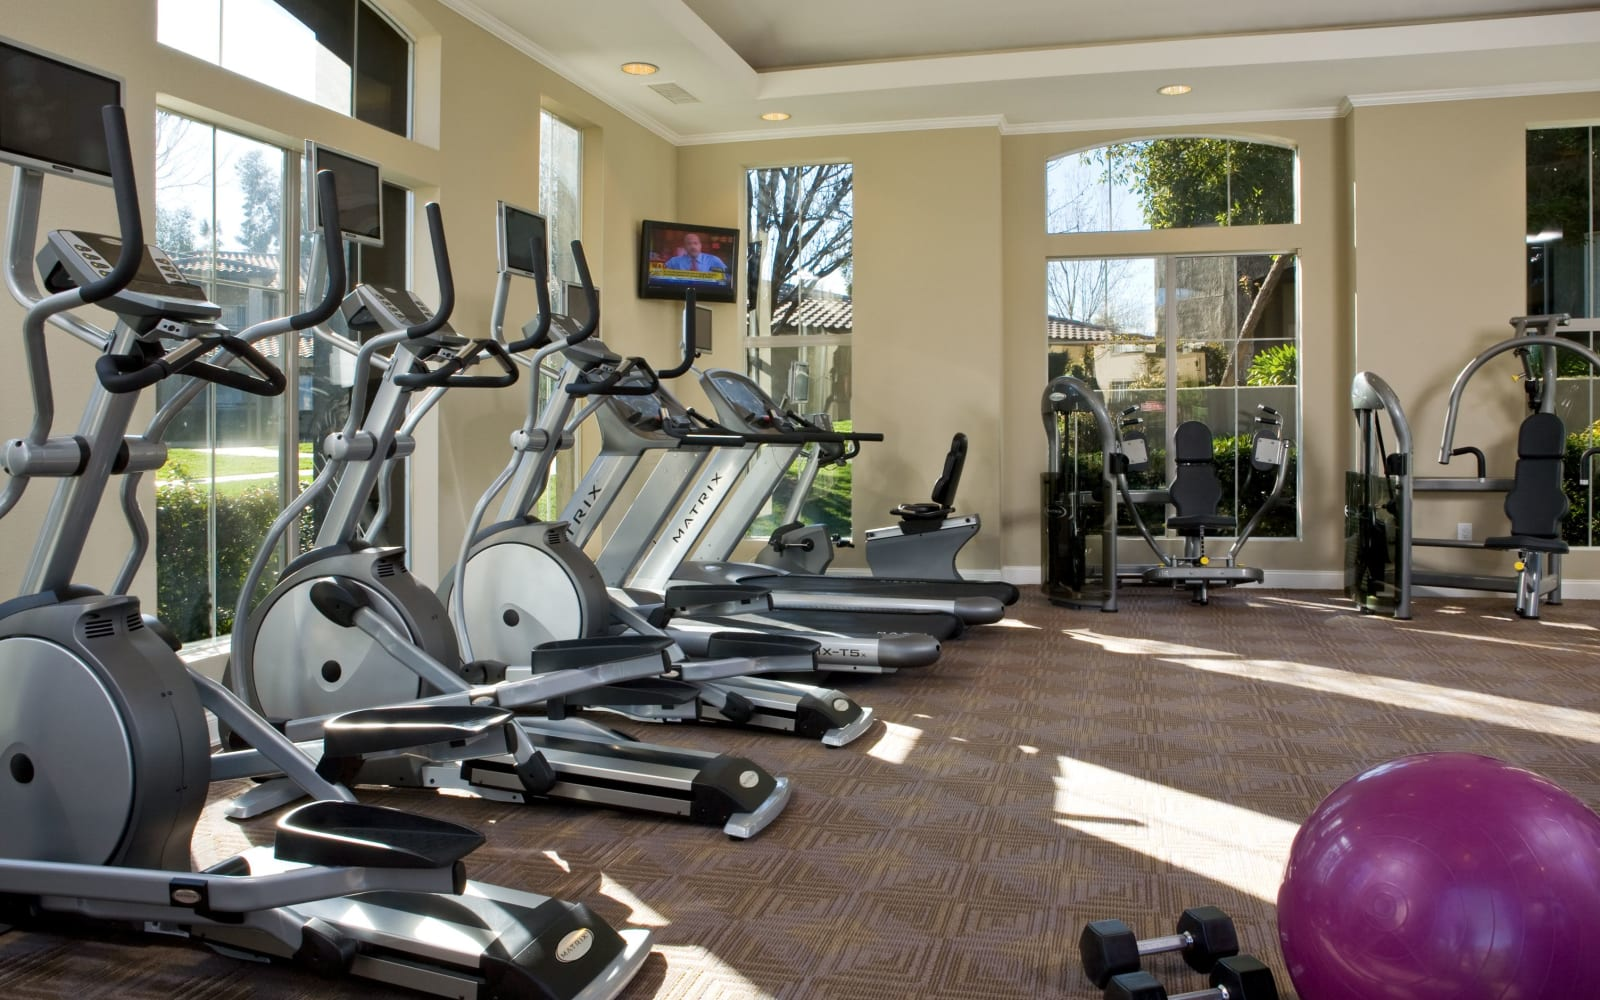 Fully-equipped fitness center at Castlerock at Sycamore Highlands in Riverside, California